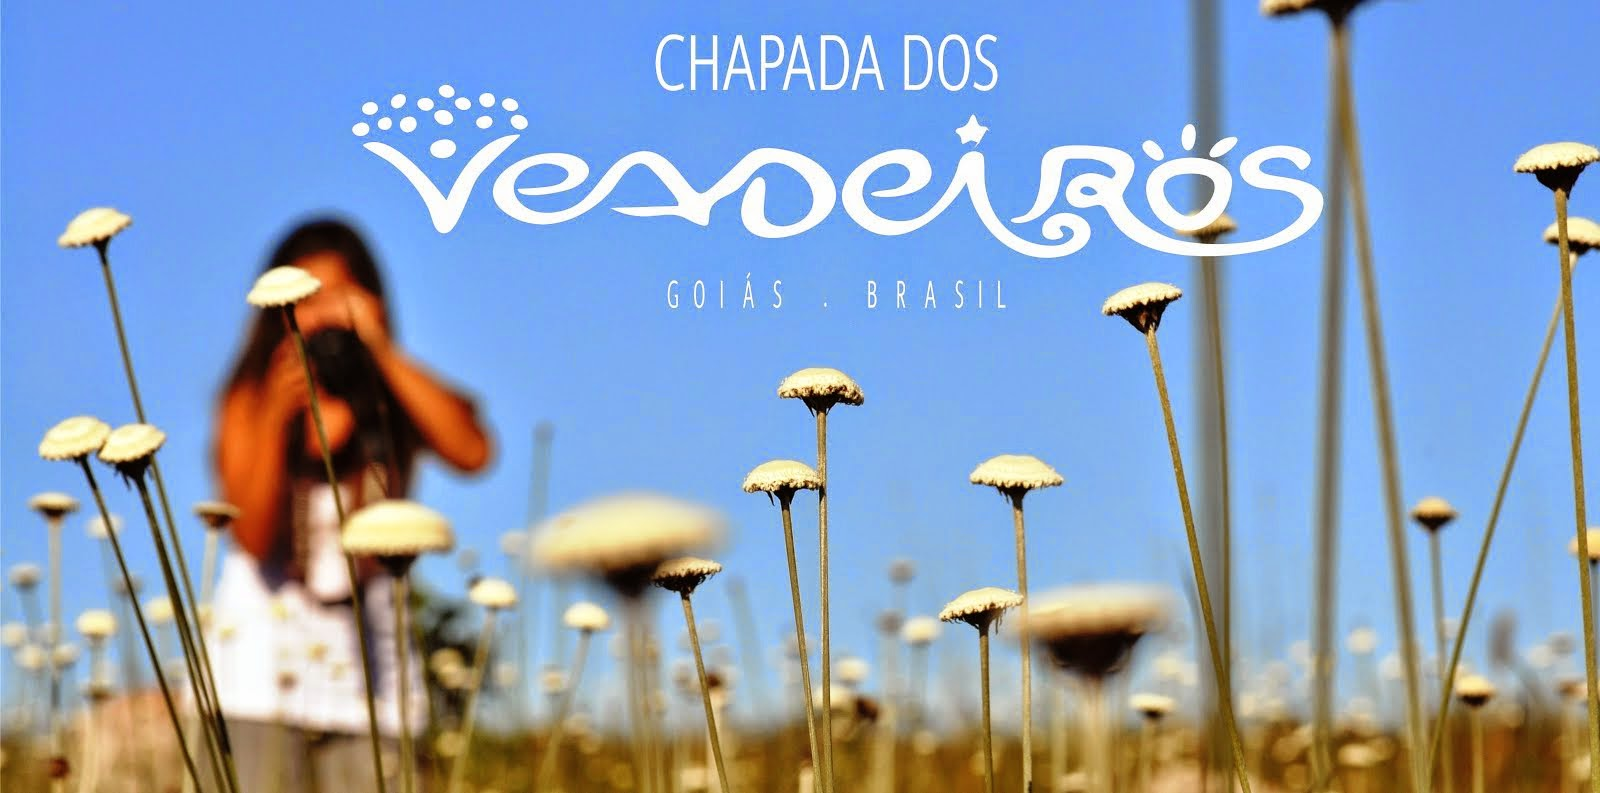 Chapada dos Veadeiros - Um Paraíso no coração do Brasil